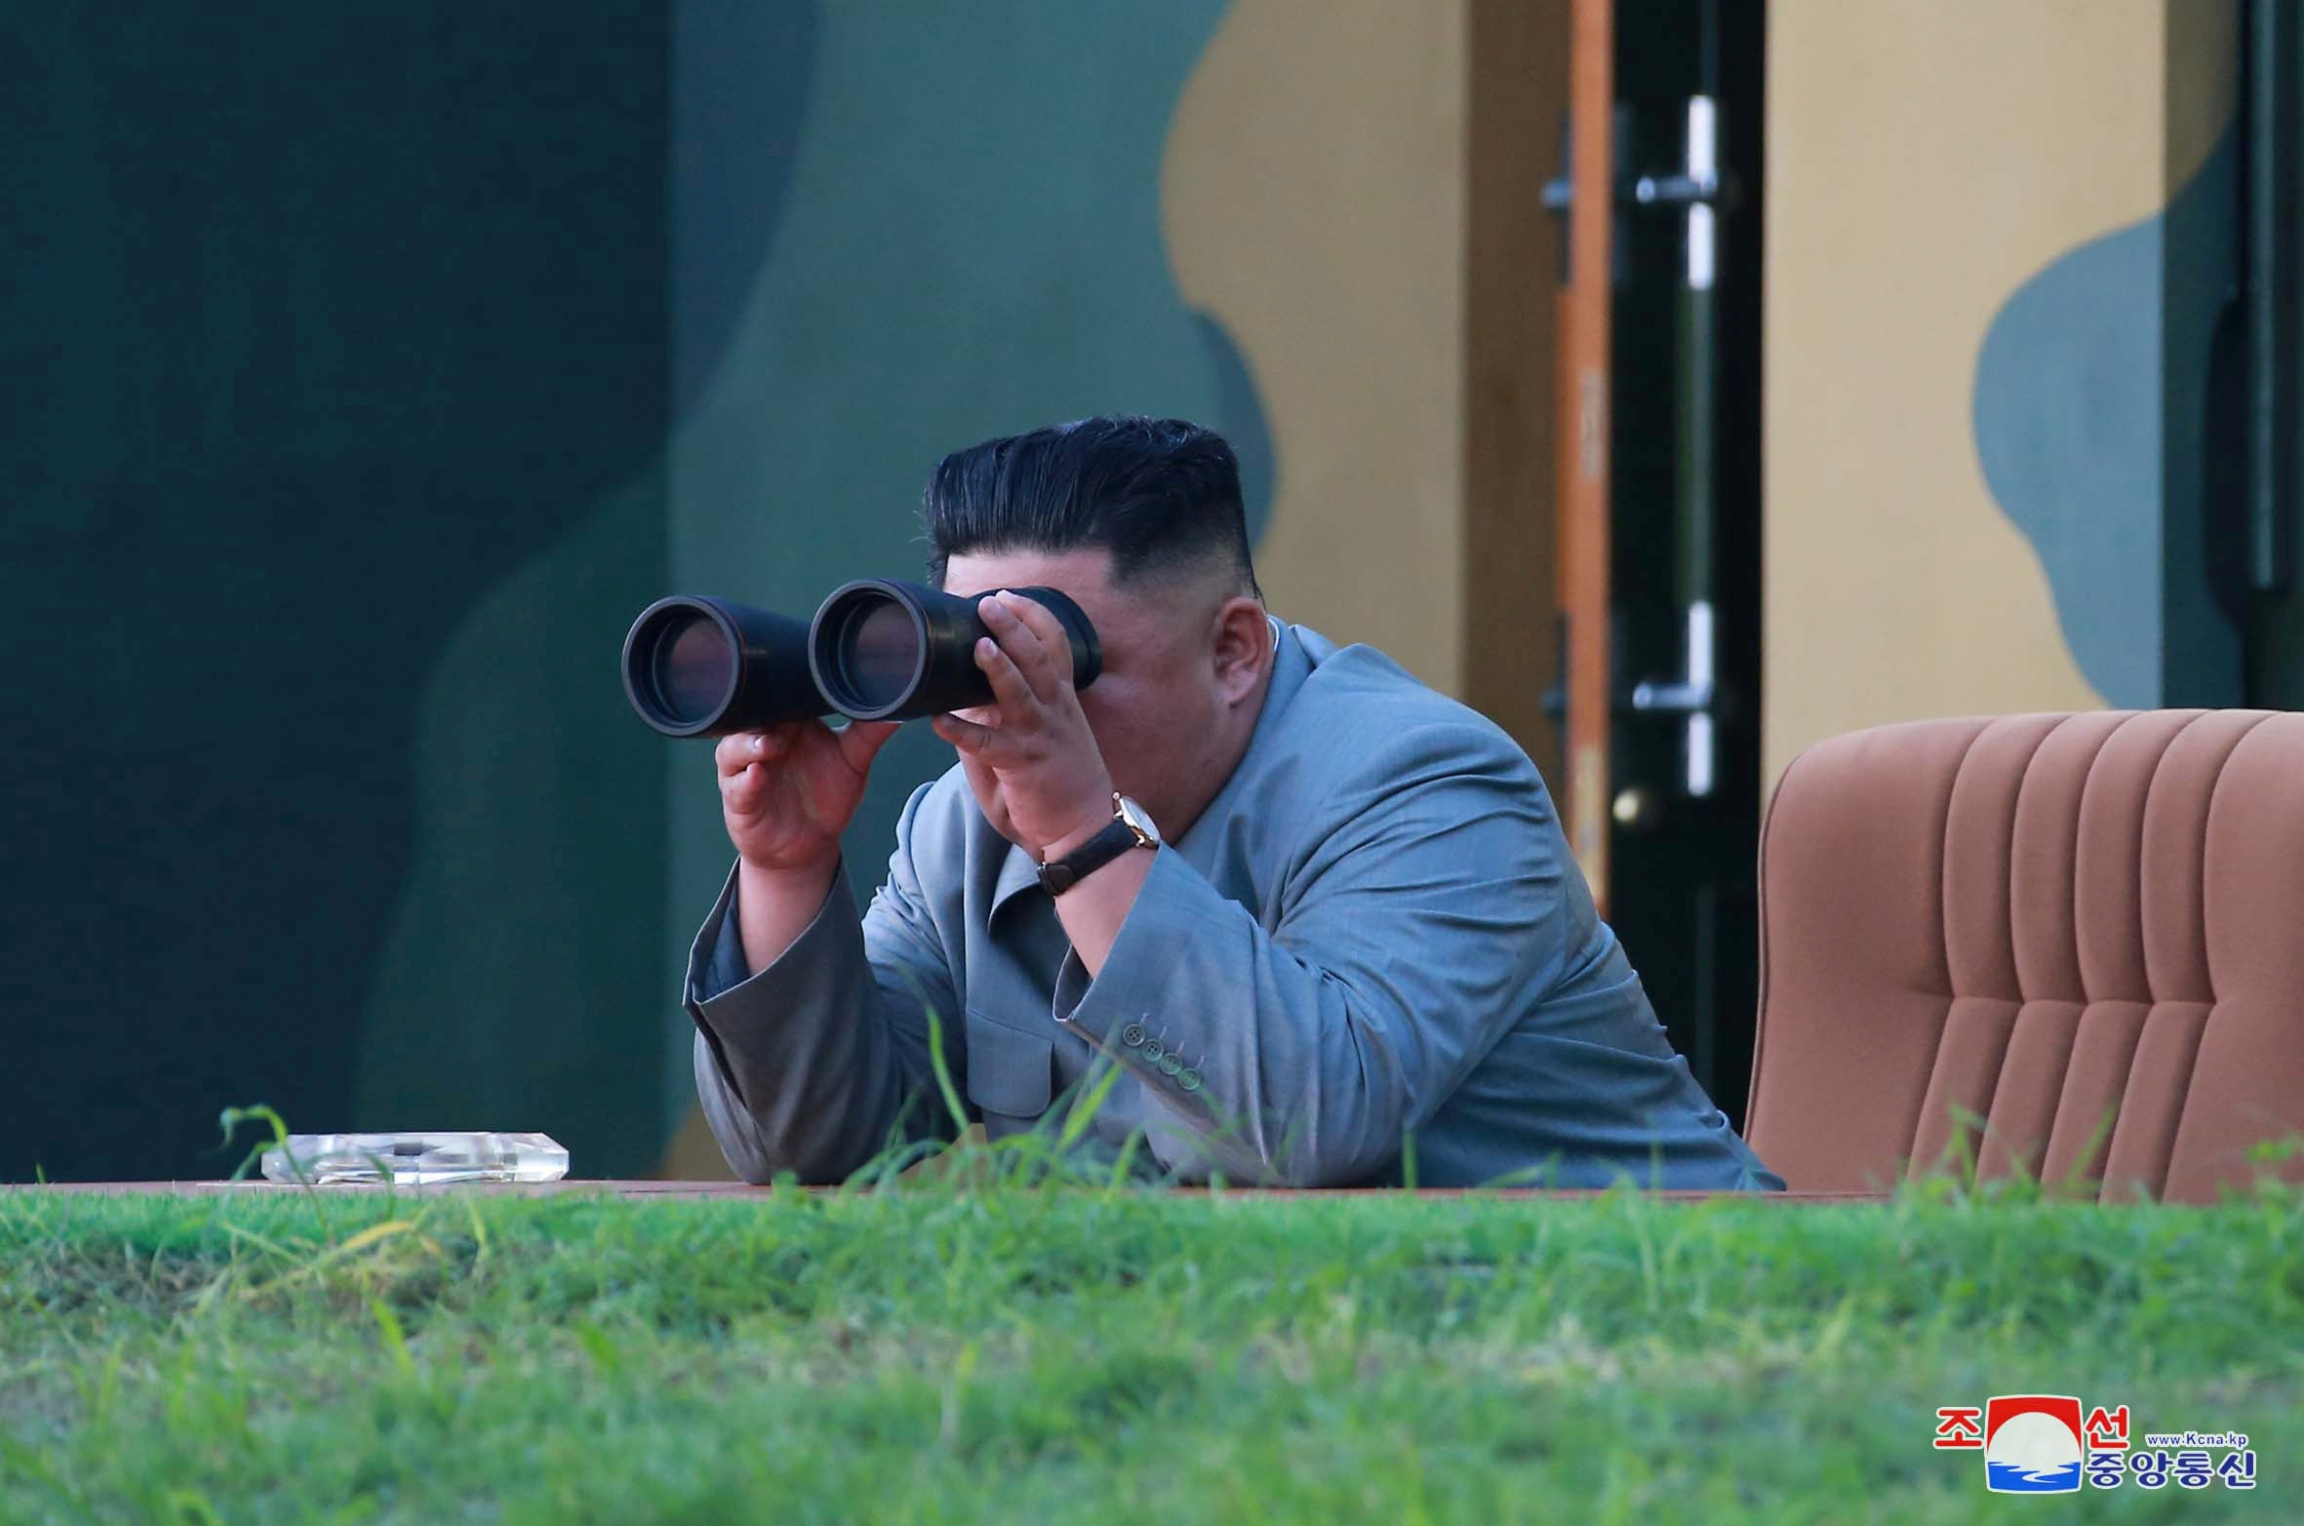 Kim Jong-un looks through binoculars and leans over a ledge